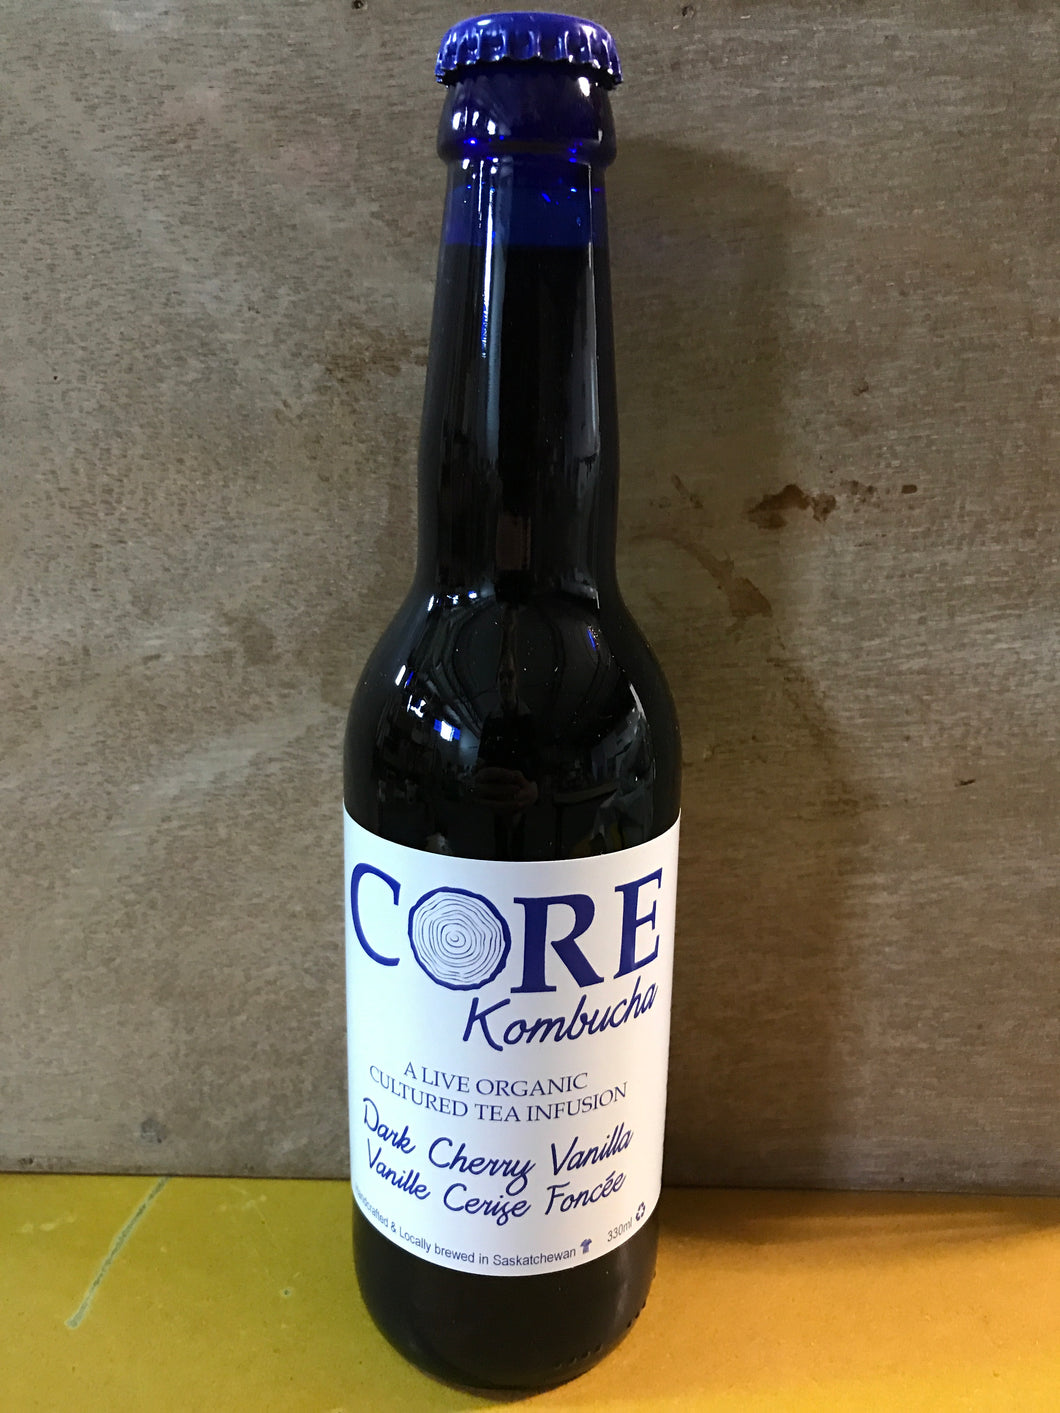 Core Kombucha Dark Cherry Vanilla (355ml)